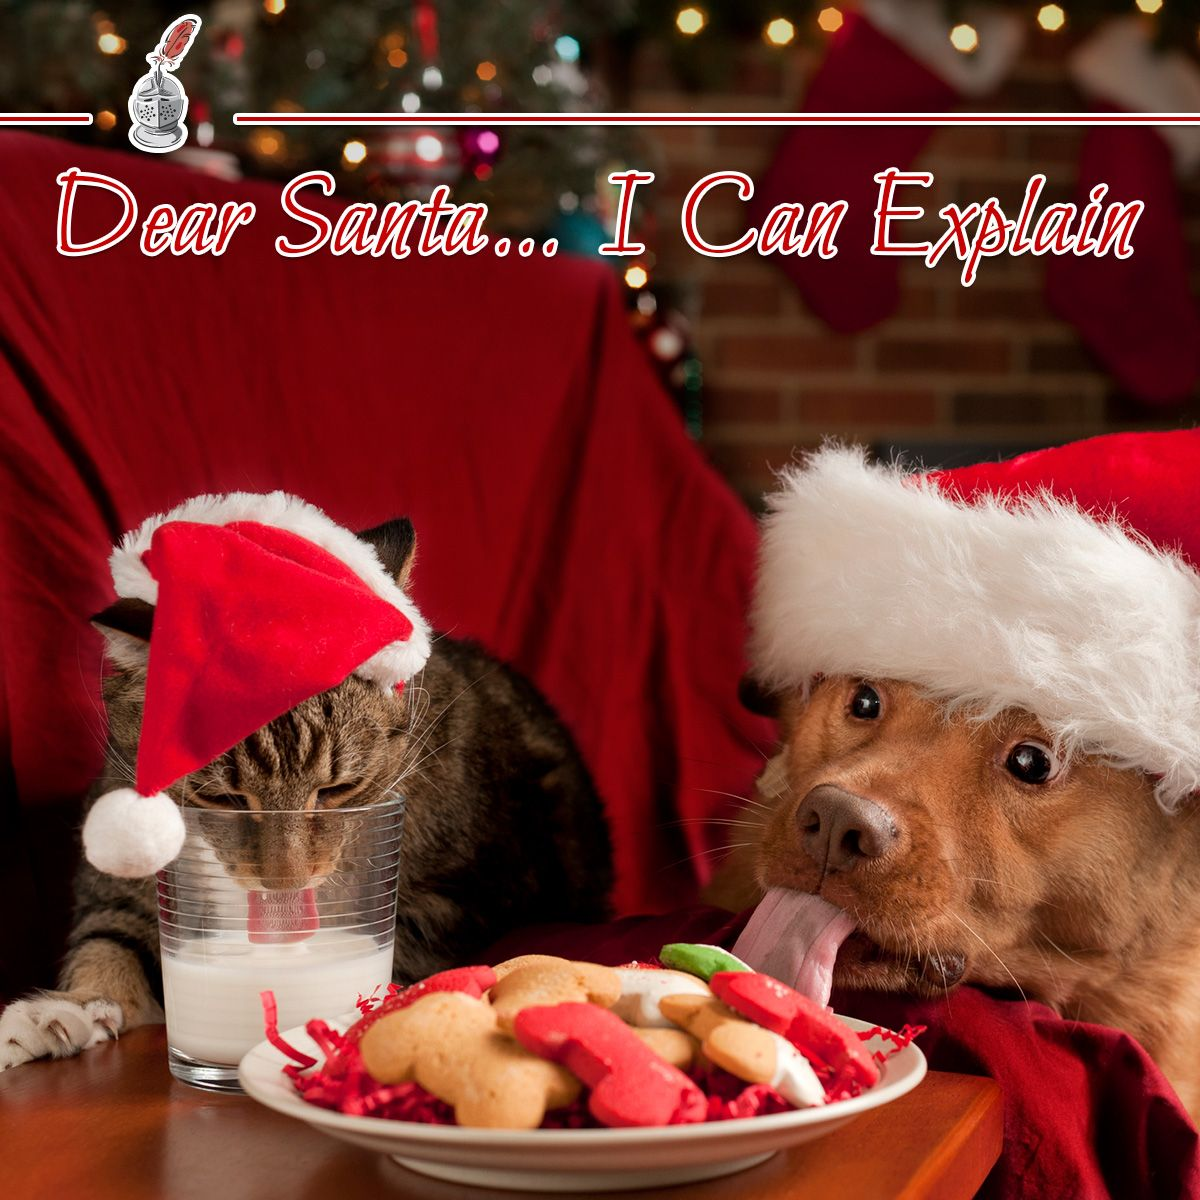 Dear Santa… I Can Explain